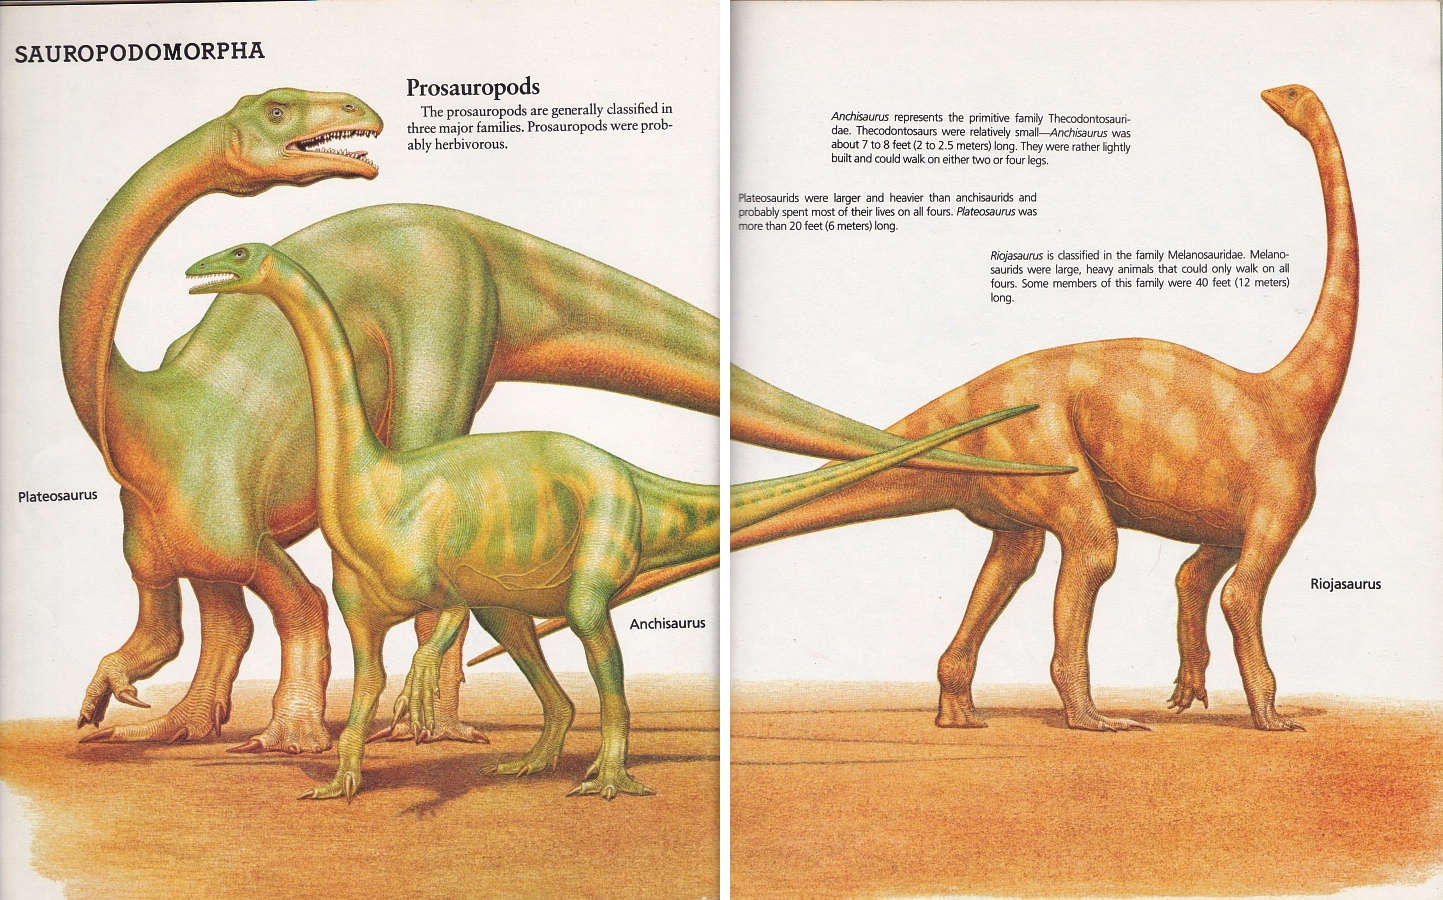 Prosauropods by Peter Zallinger